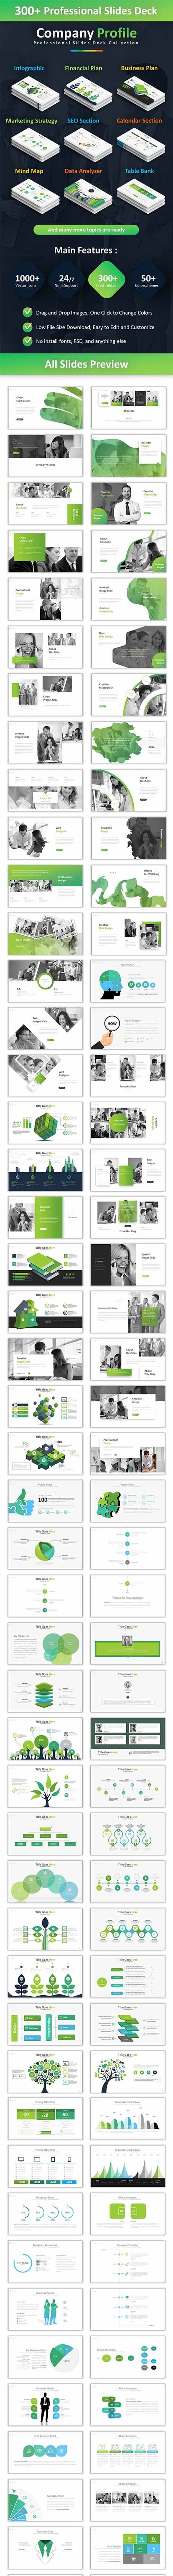 GR - Company Profile Powerpoint 22198669